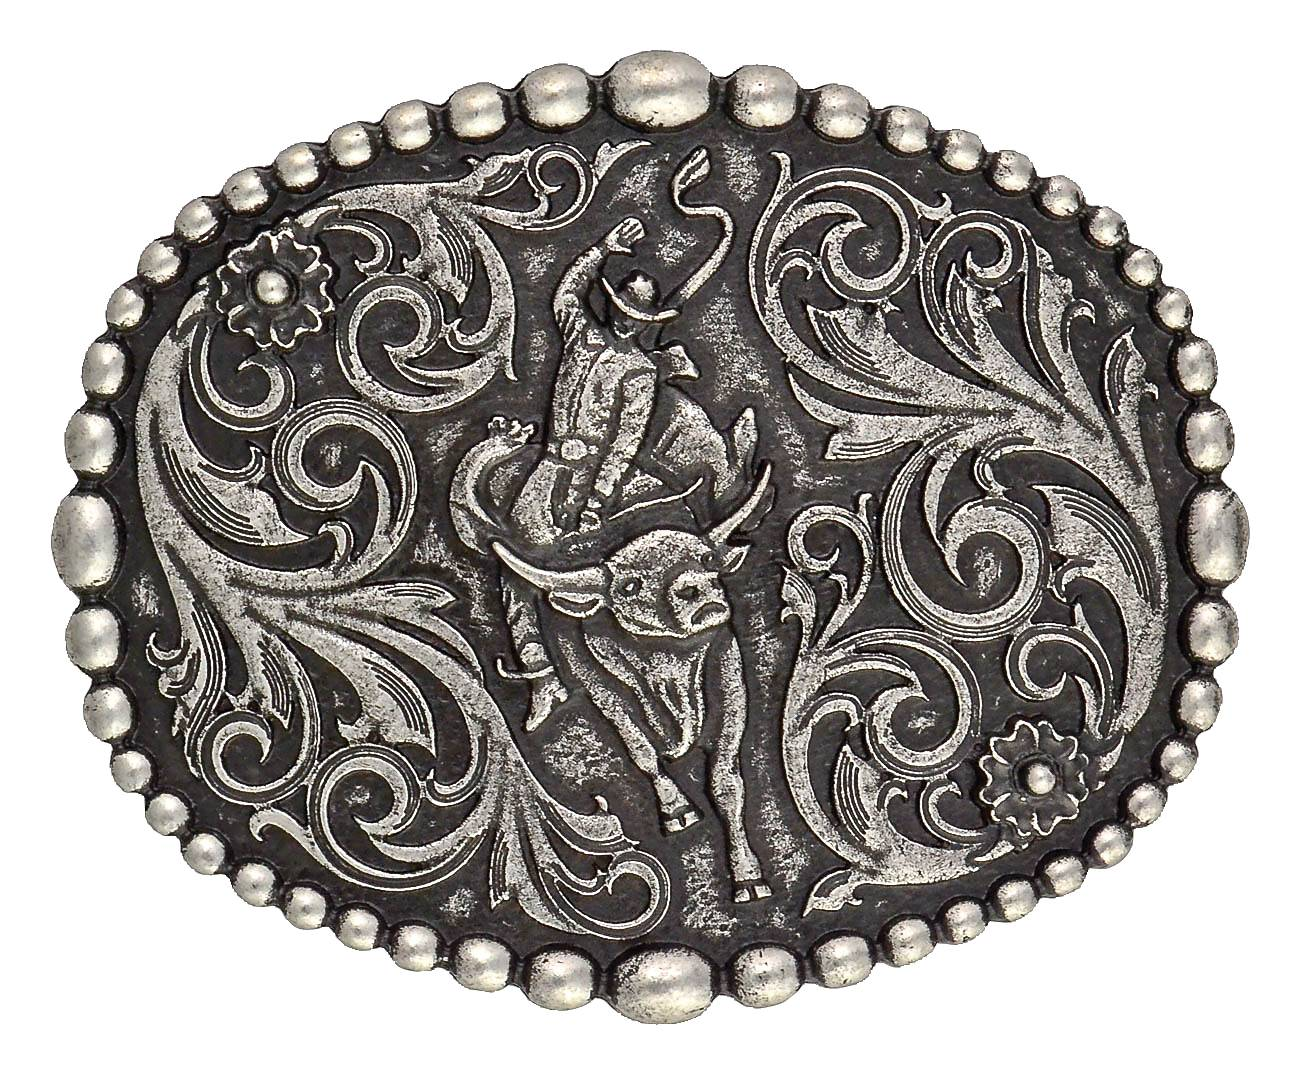 Montana Silversmiths Classic Beaded Trim Attitude Buckle With Bullrider